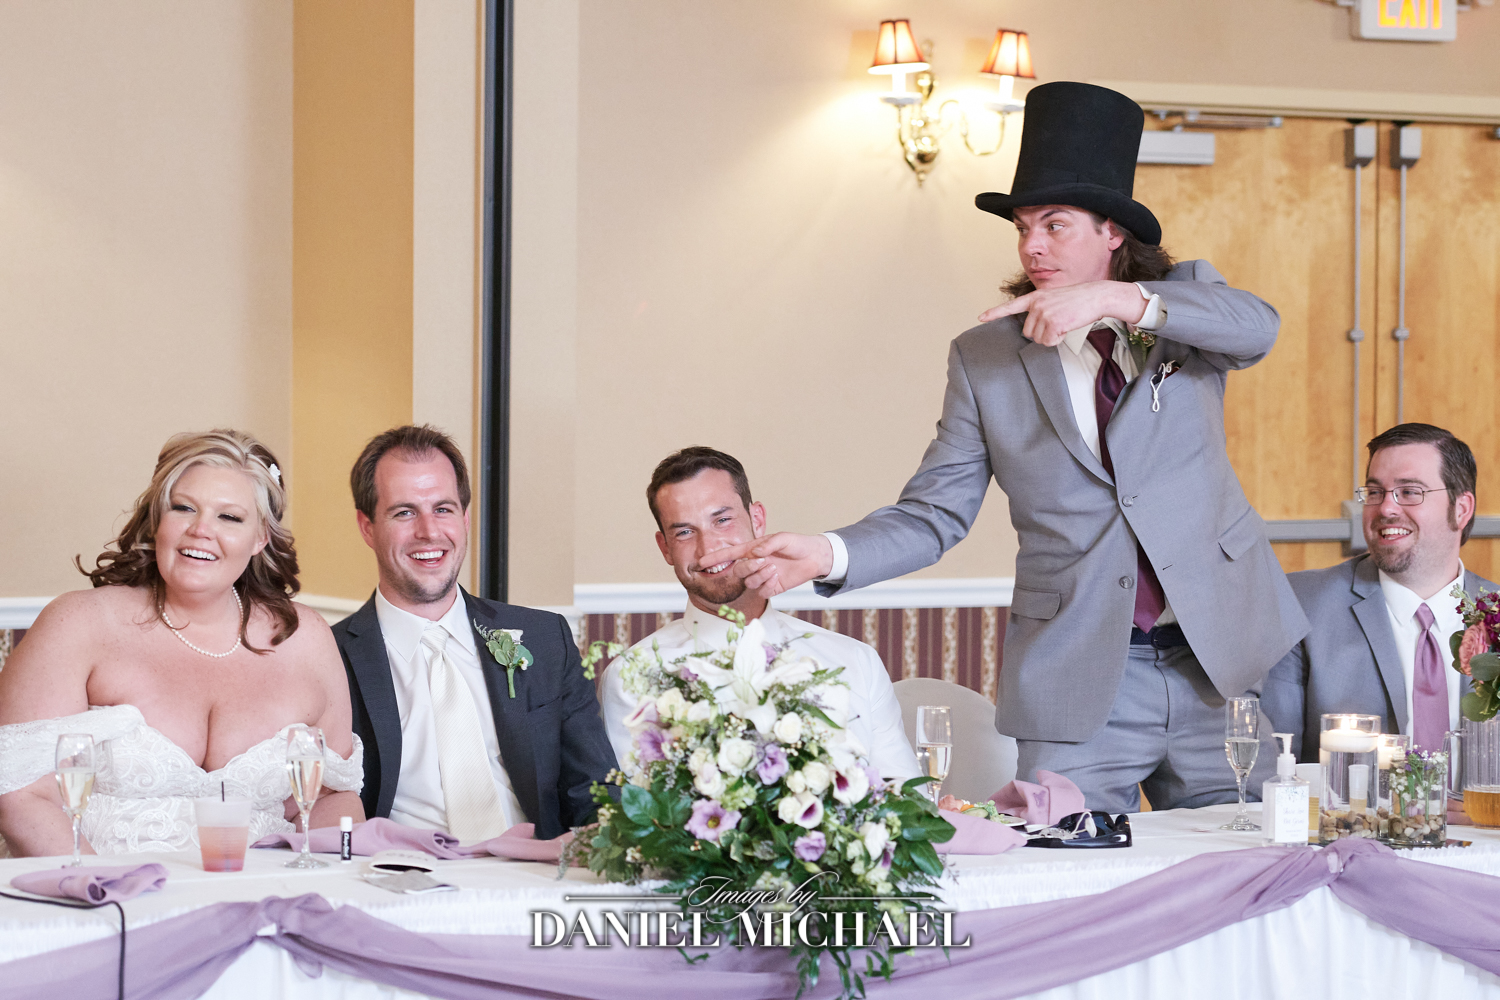 Top Hat Giving Speech at Wedding Reception